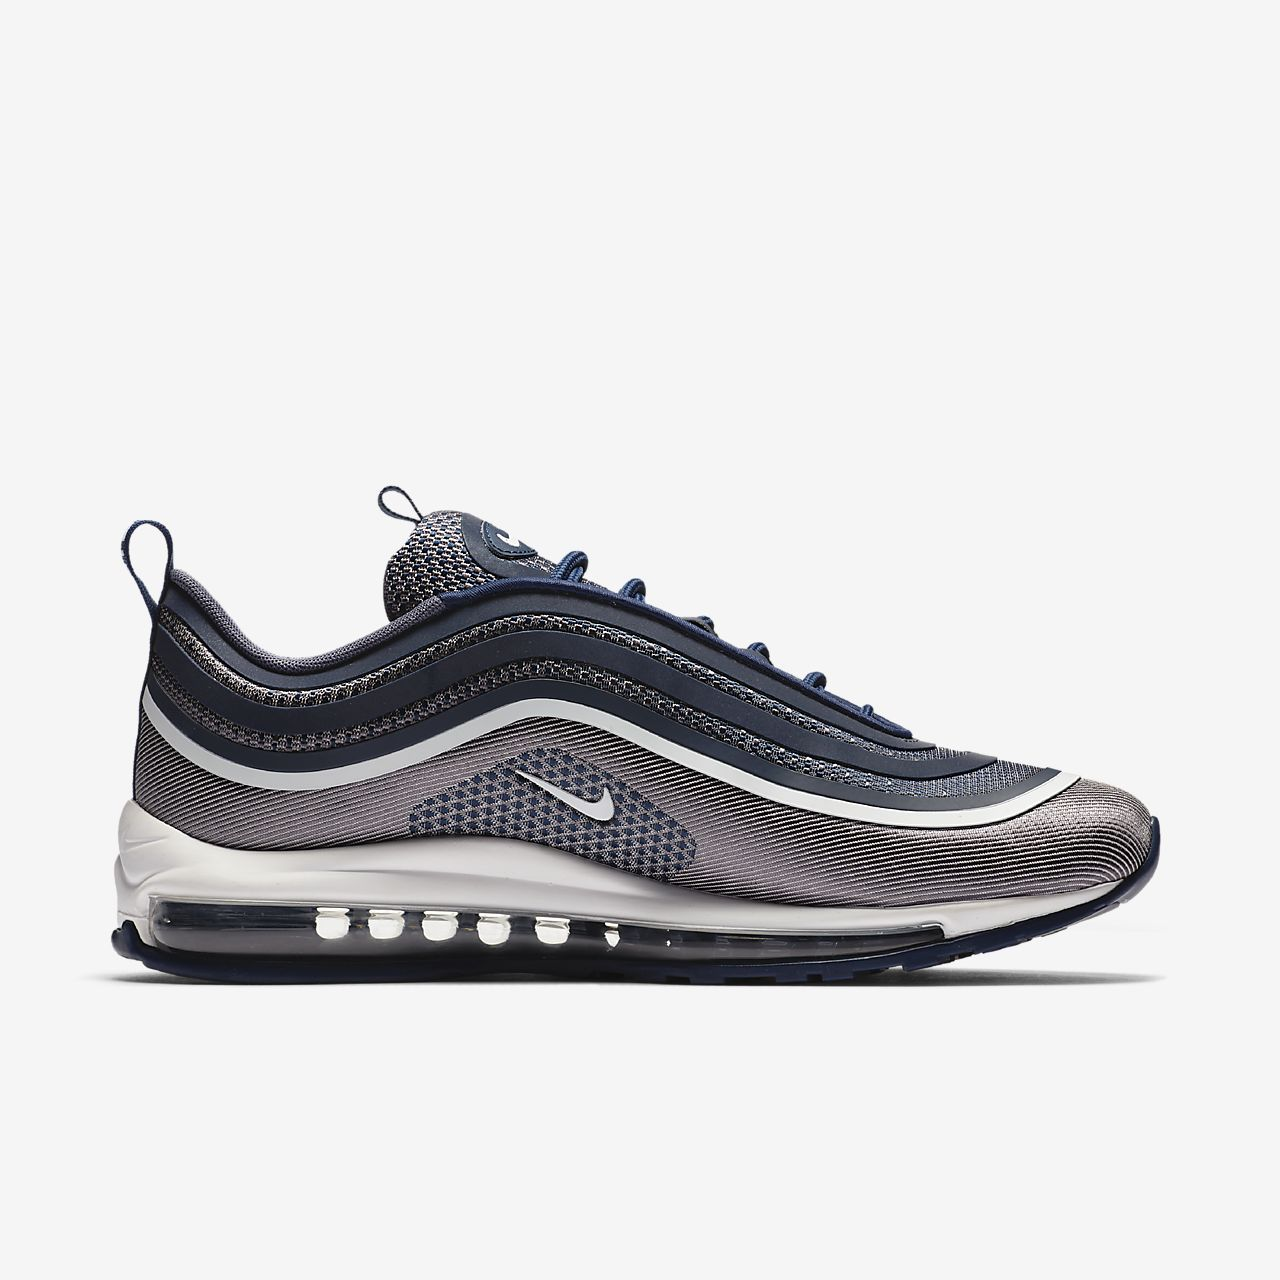 Nike Air Max 97 Premium SE (Black/Metallic Gold) Size 11